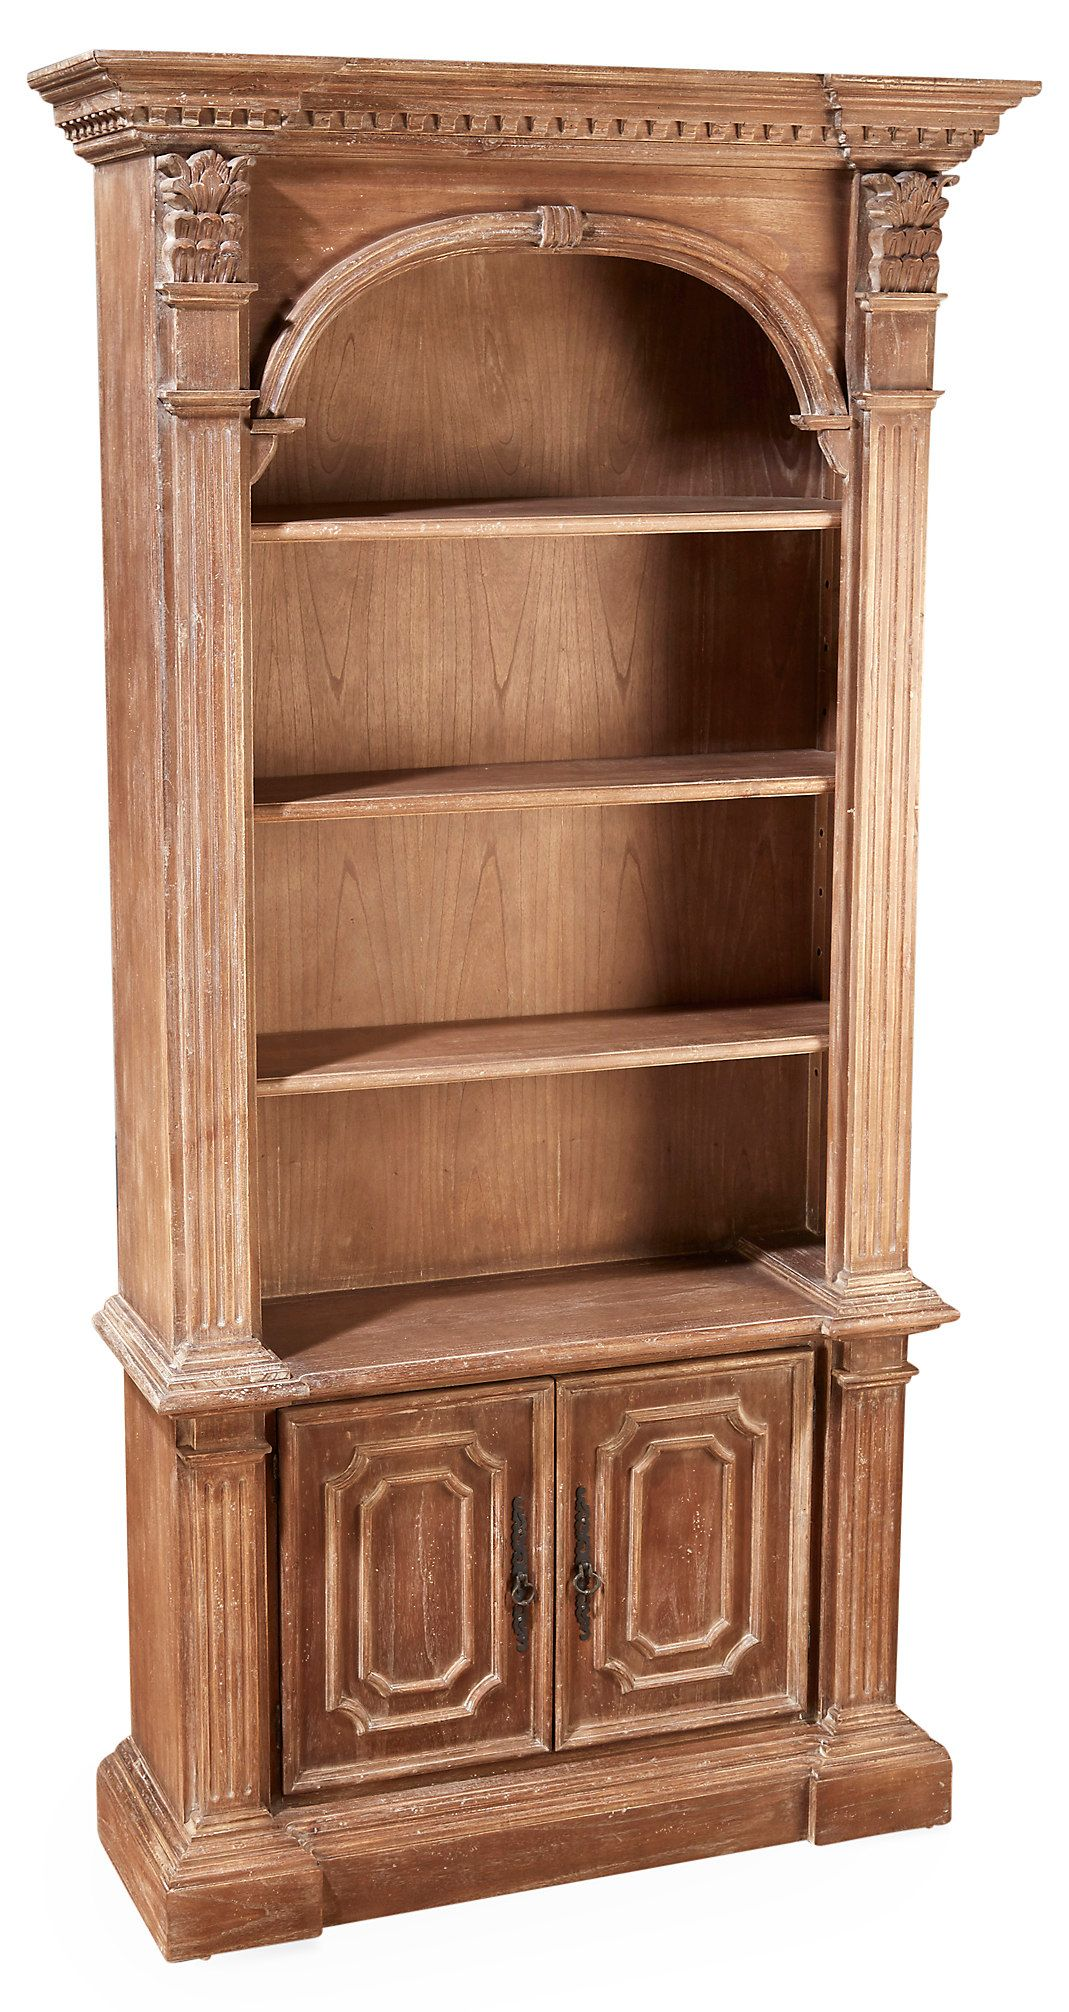 A Natural Stain And Weathered Finish Lends This Masterfully Carved Mindi Wood Bookcase The Look Of A Prized Estate Bookcase Wood Bookcase Wood Furniture Design